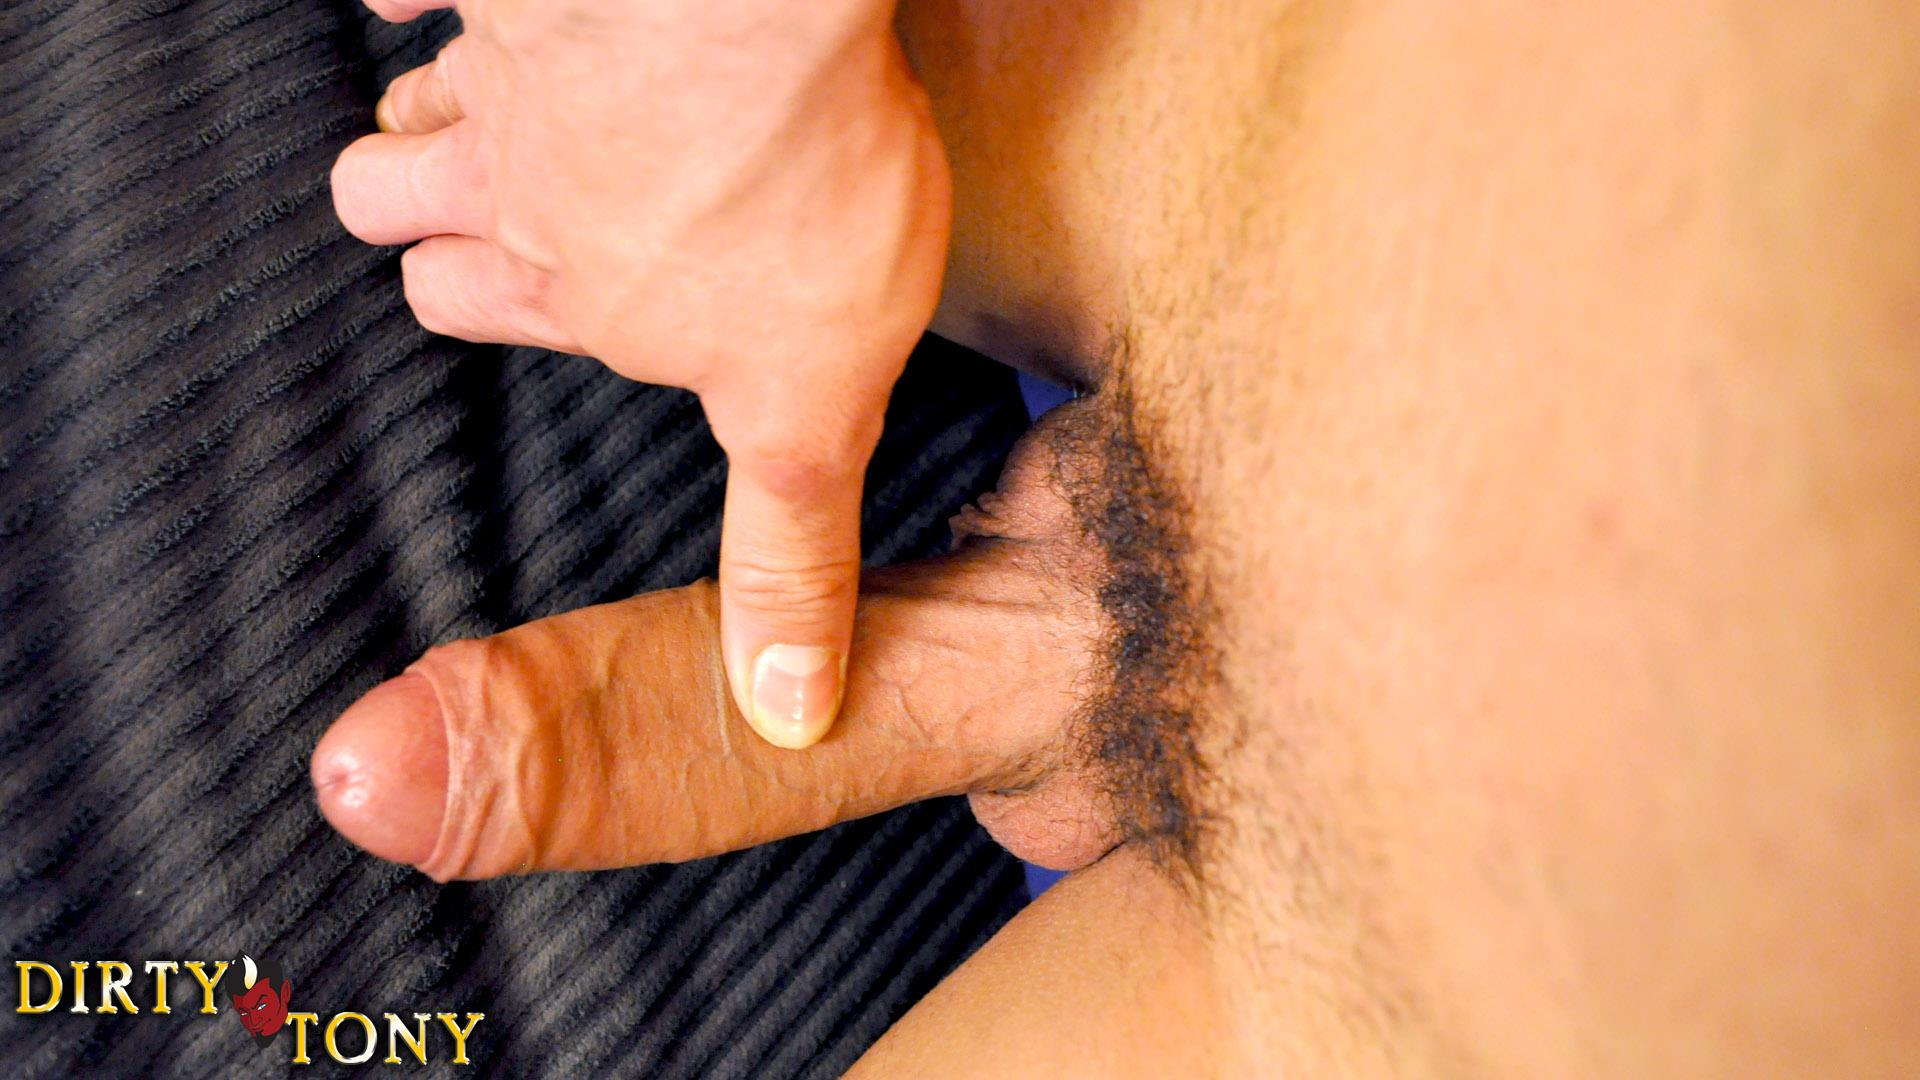 Dirty-Tony-LIAM-SANTIAGO-Straight-Muscle-Latino-Jerking-Off-Big-Uncut-Cock-Amateur-Gay-Porn-08 Straight Hairy Muscle Latino Auditions For Gay Porn With A Big Uncut Cock